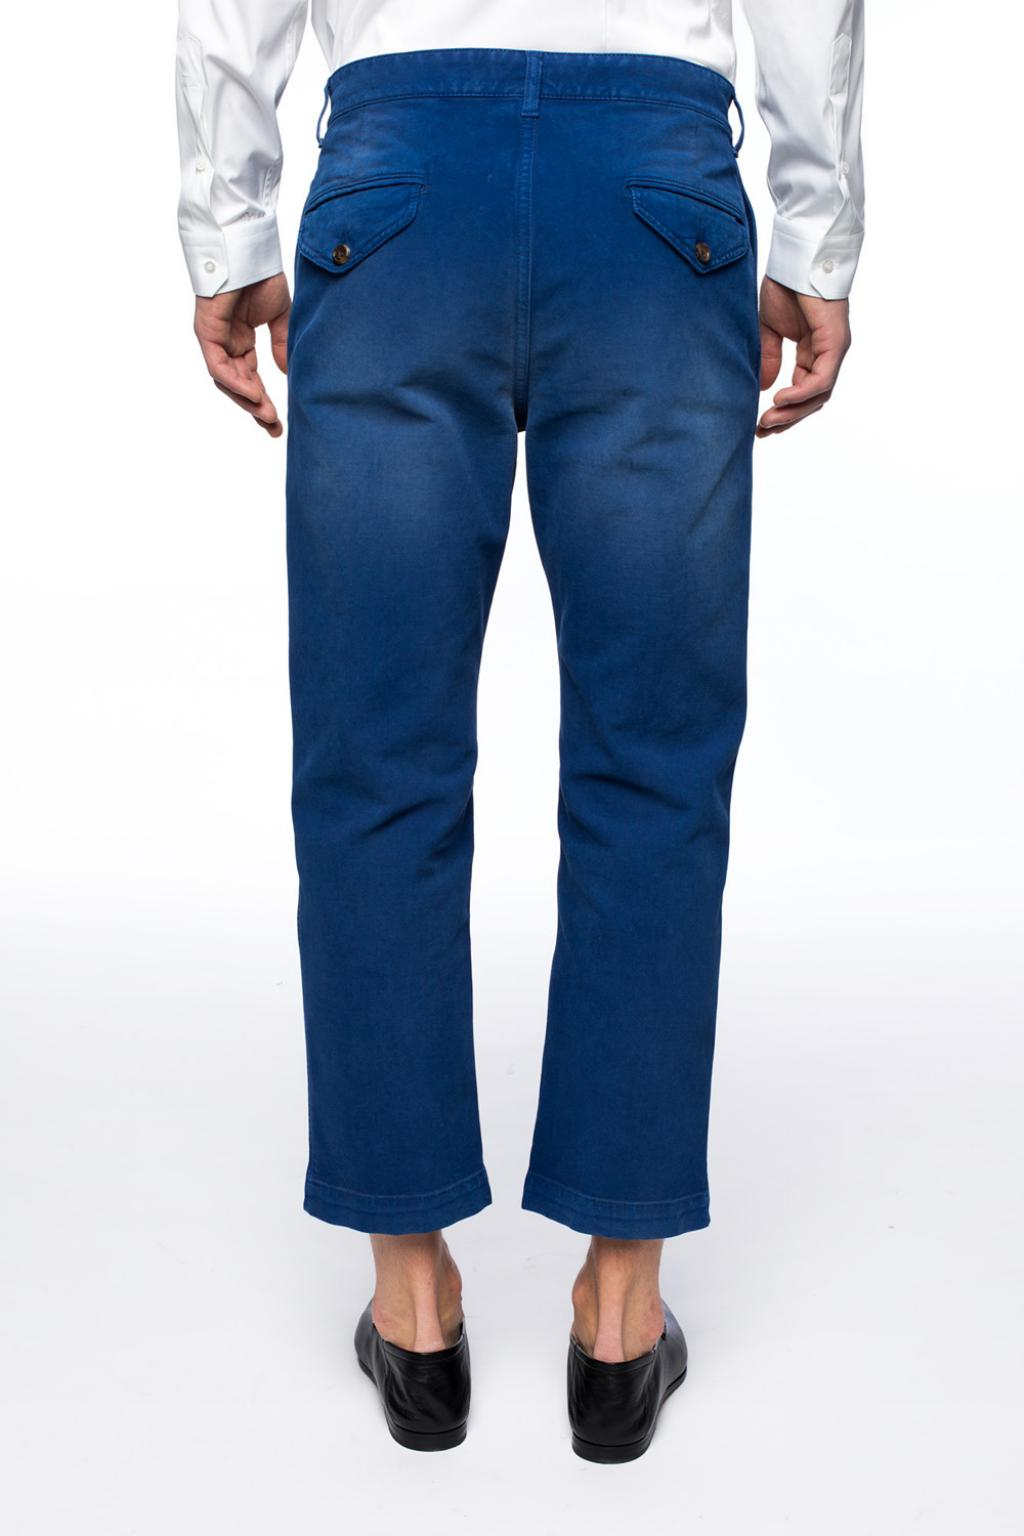 Gucci Embroidered trousers